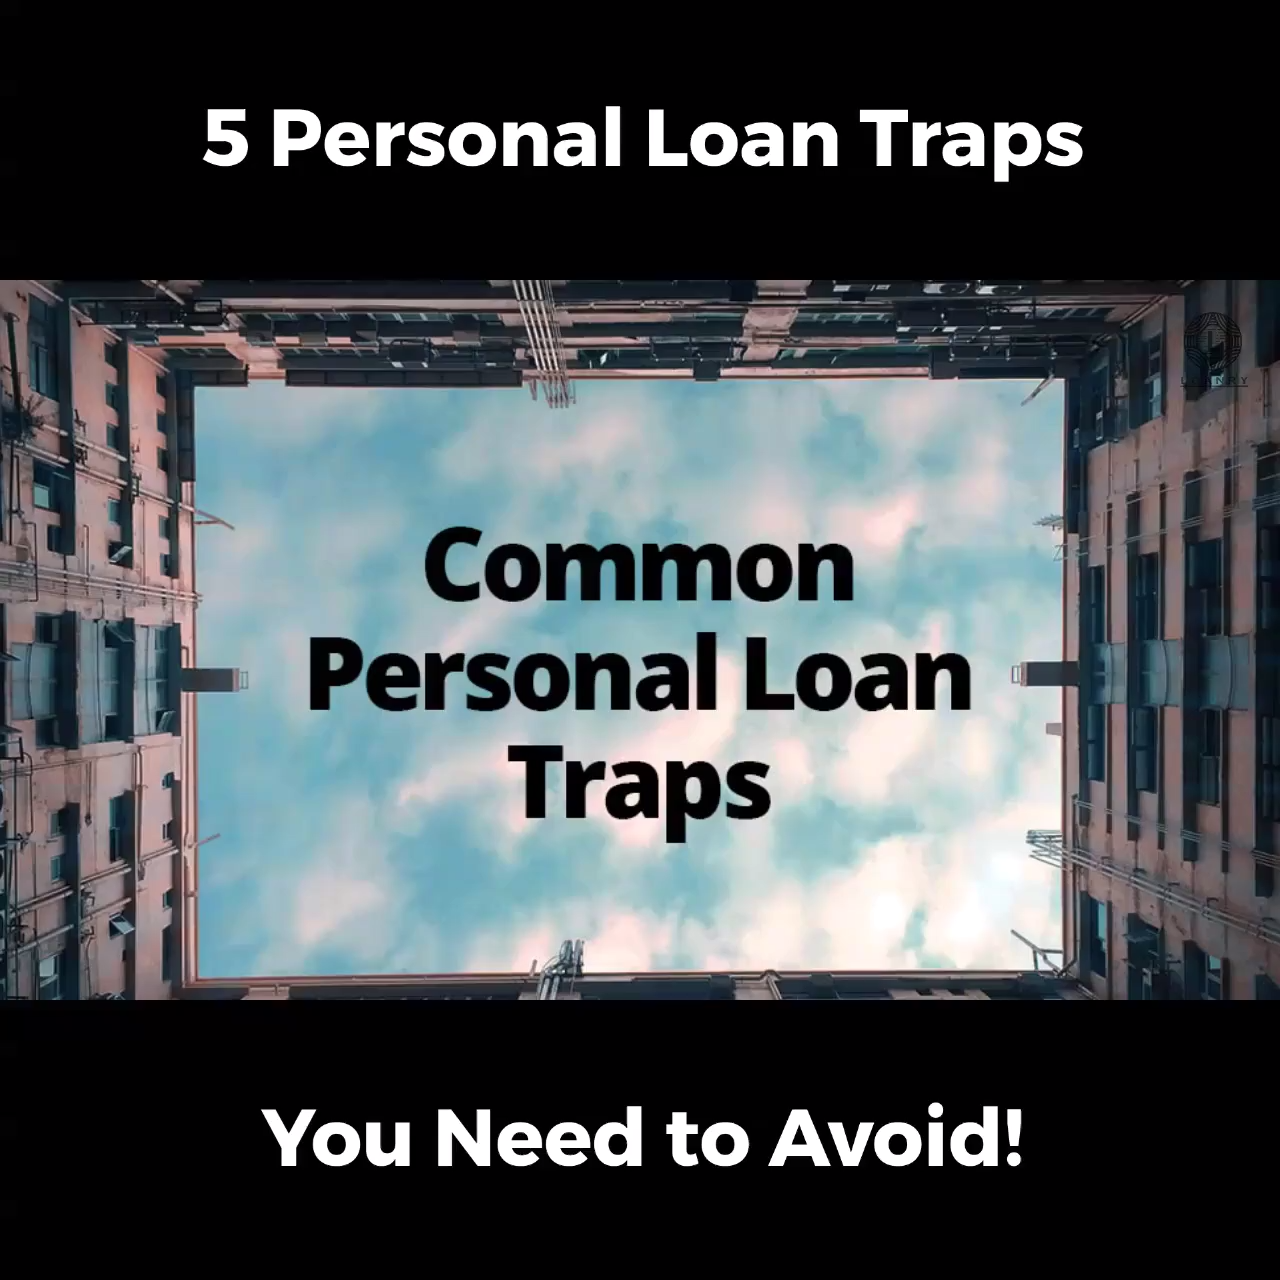 Common Personal Loan Traps Fees Rates Oh My Video Personal Loans Loan The Borrowers